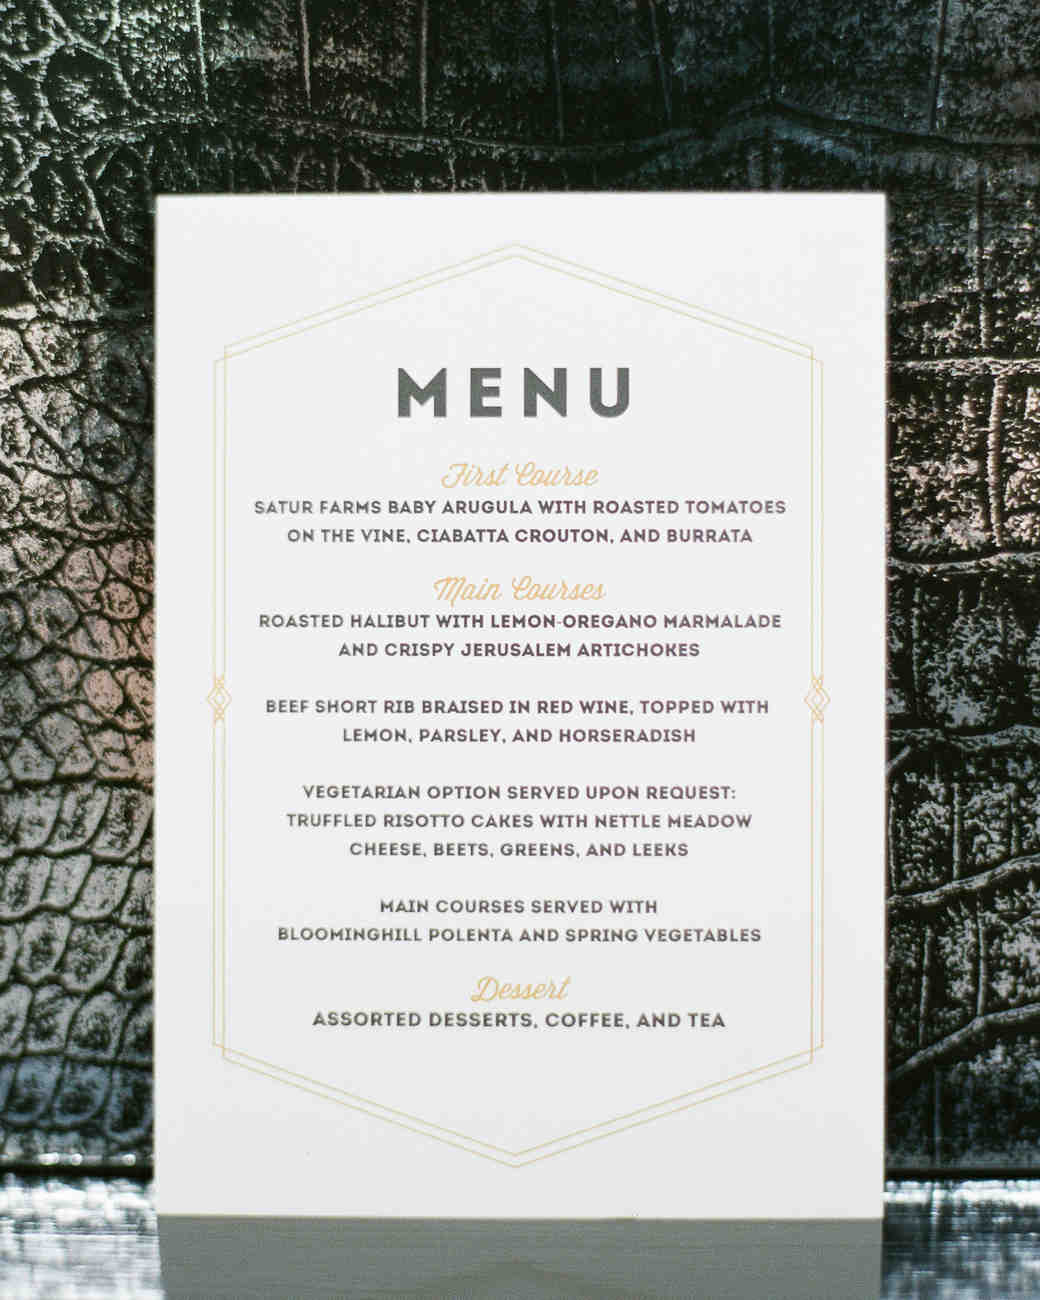 ashley-jonathon-wedding-menu-61-s111483-0914.jpg